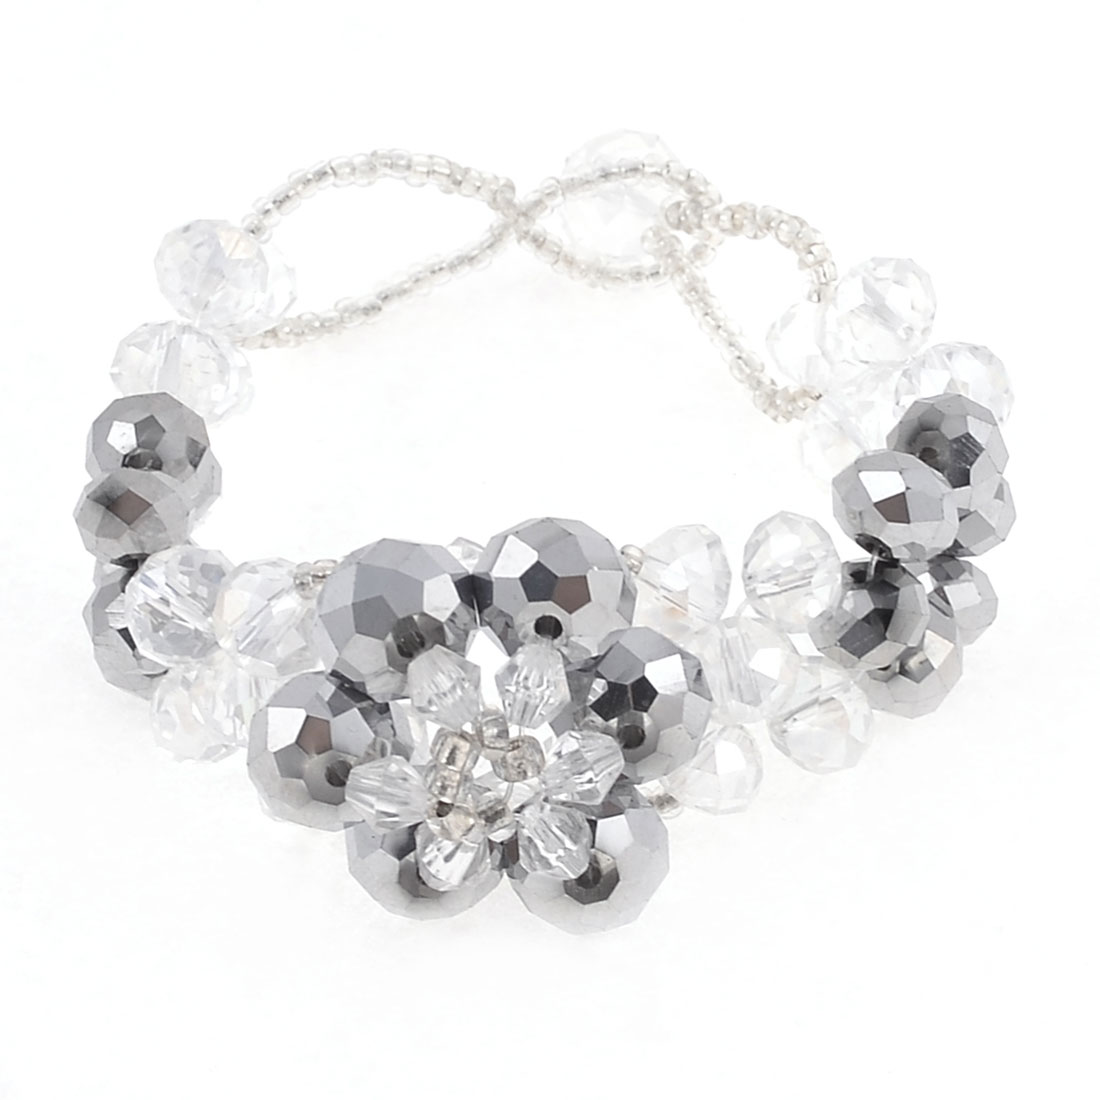 Lady Faceted Crystal Flower Shape Linked Bracelet Silver Tone Clear